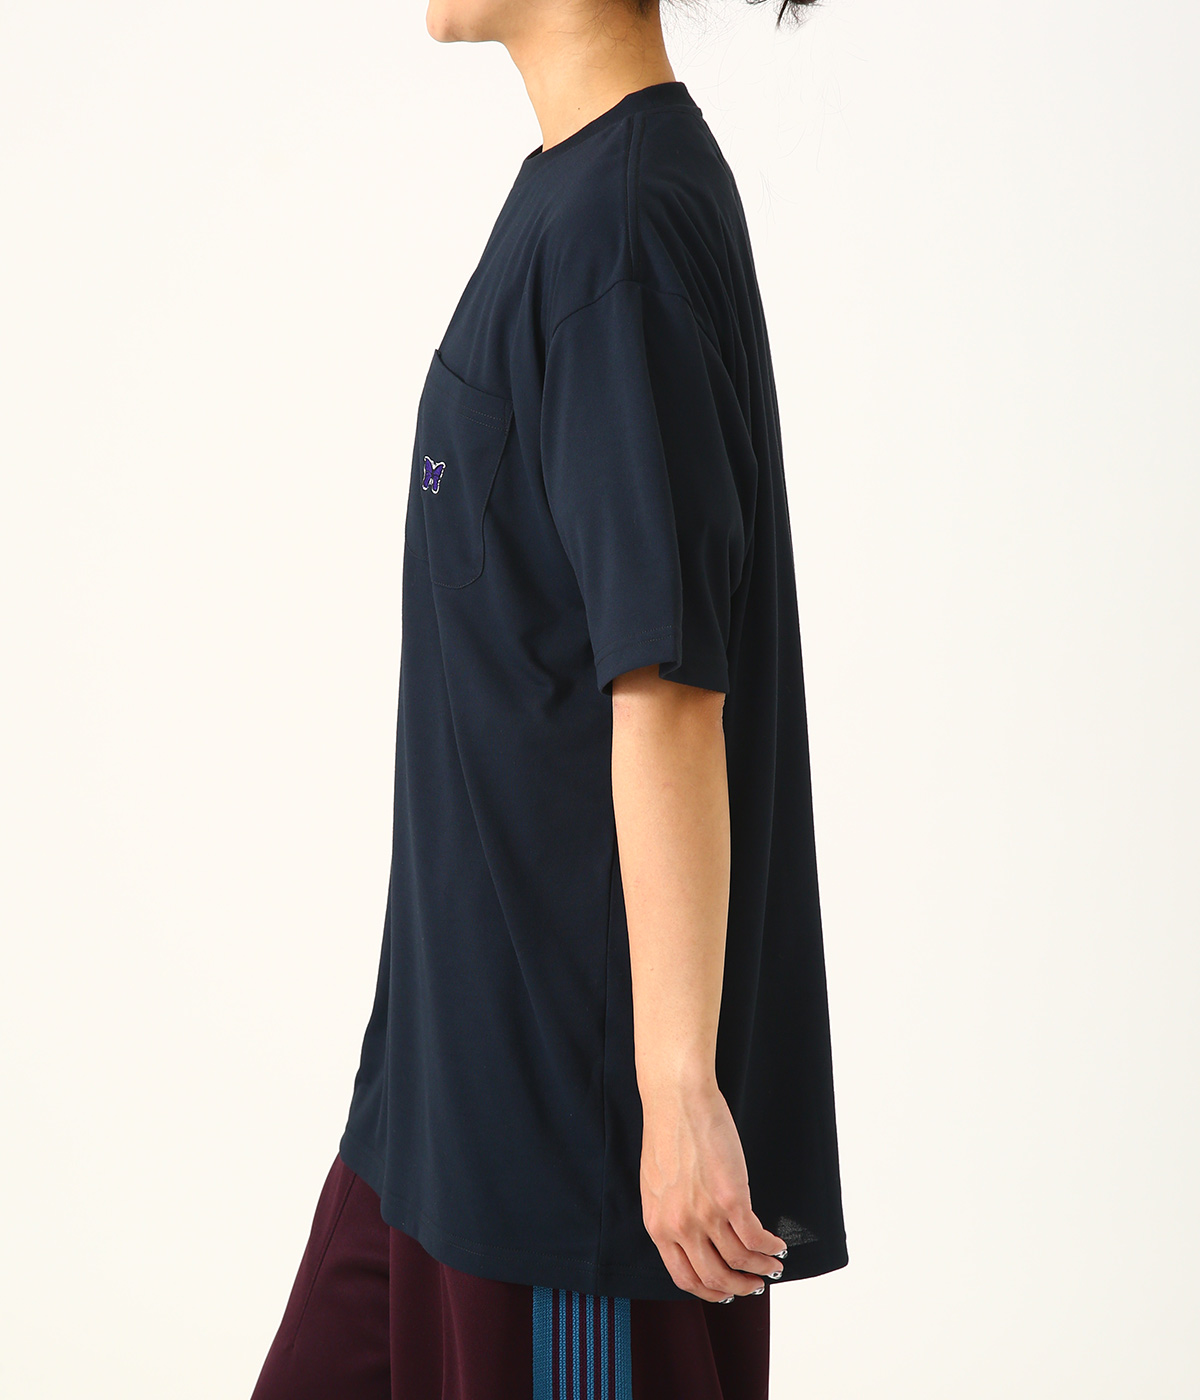 S/S Crew Neck Tee - Synthetic Jersey